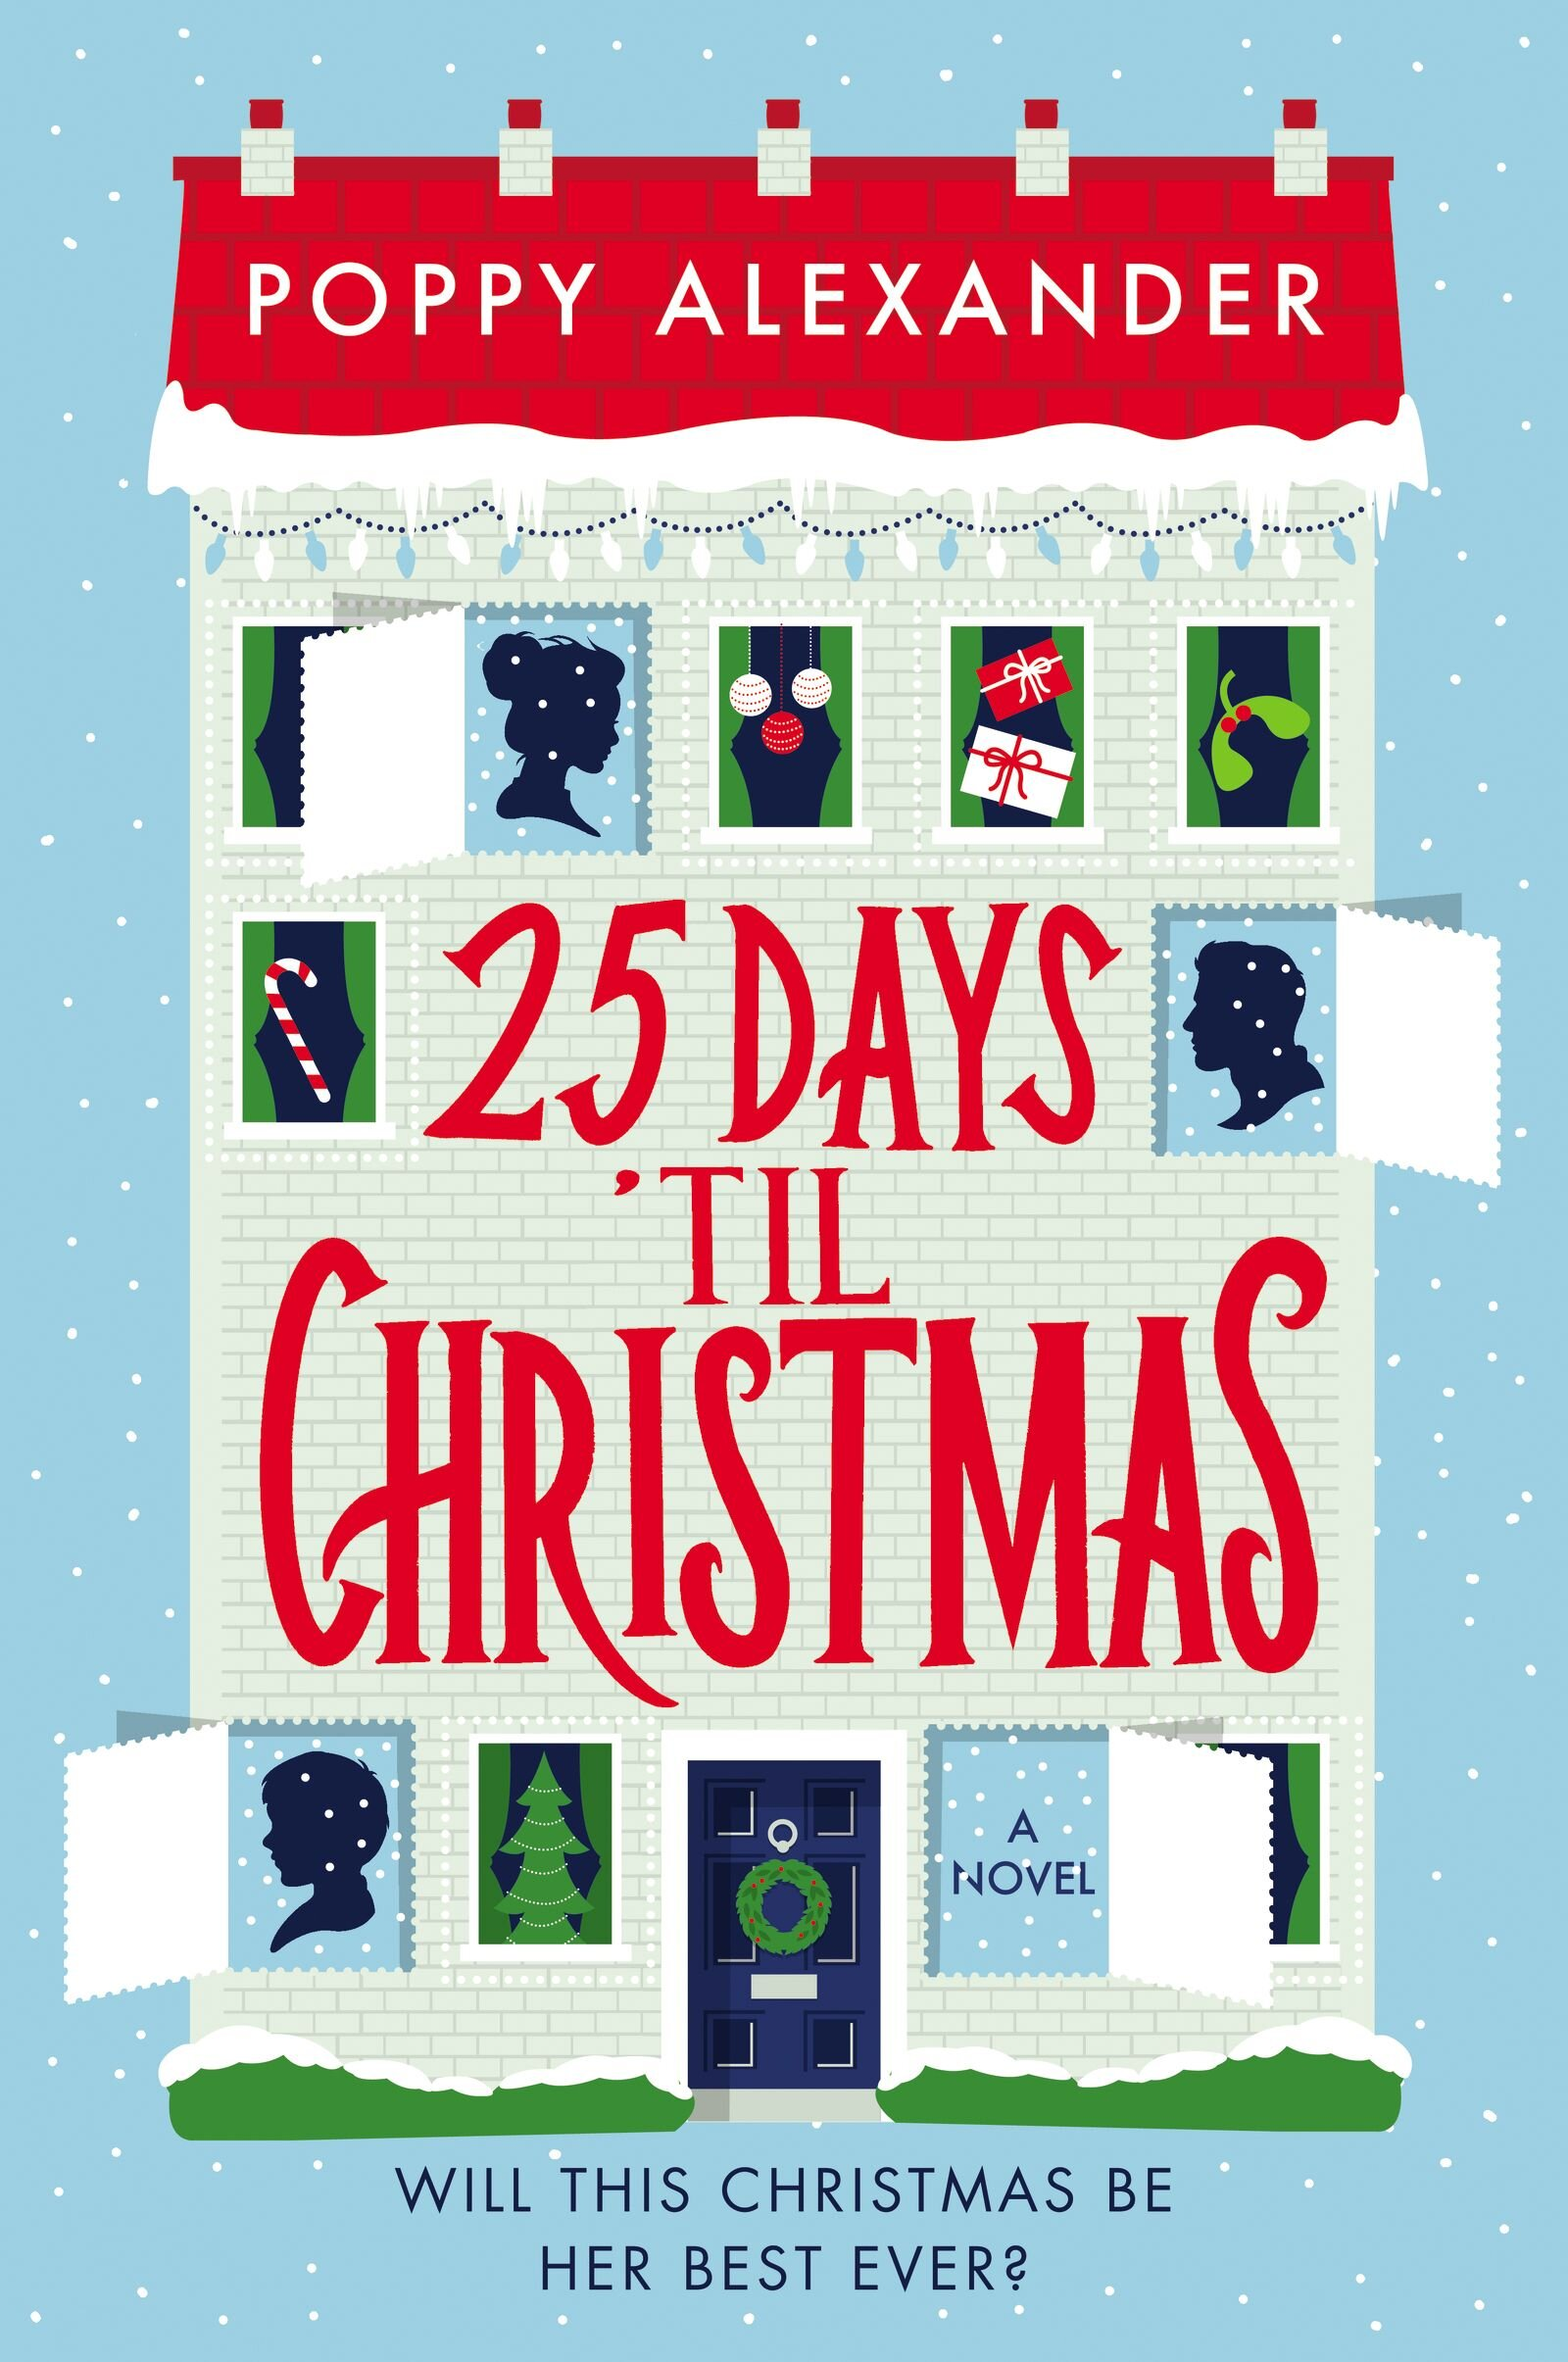 October 8 (HarperCollins) - A contemporary, emotional, but ultimately feel-good, festive up-lit novel for fans of Jenny Colgan, Debbie Johnson, and Holly Martin.Kate Potter used to love Christmas. A few years ago she would have been wrapping her presents in September and baking mince pies on Halloween, counting down to the countdown to Christmas. But a few years ago, everything was different. That was before Kate's husband went away with the army and didn't come home. Now she can hardly stand December at all.Kate's lonely. She doesn't think she's ready for romance, but she needs more than this, and her son Jack needs a Christmas to remember. What Kate needs is a Christmas miracle, and if there isn't one on its way, she'll just have to make her own.So begins Kate's advent countdown to the best Christmas ever.She has it all planned out, but you can't plan for the unexpected, and when the path of the loneliest woman in town crosses with that of the loneliest man, she just might find a way to save Christmas for all of them...